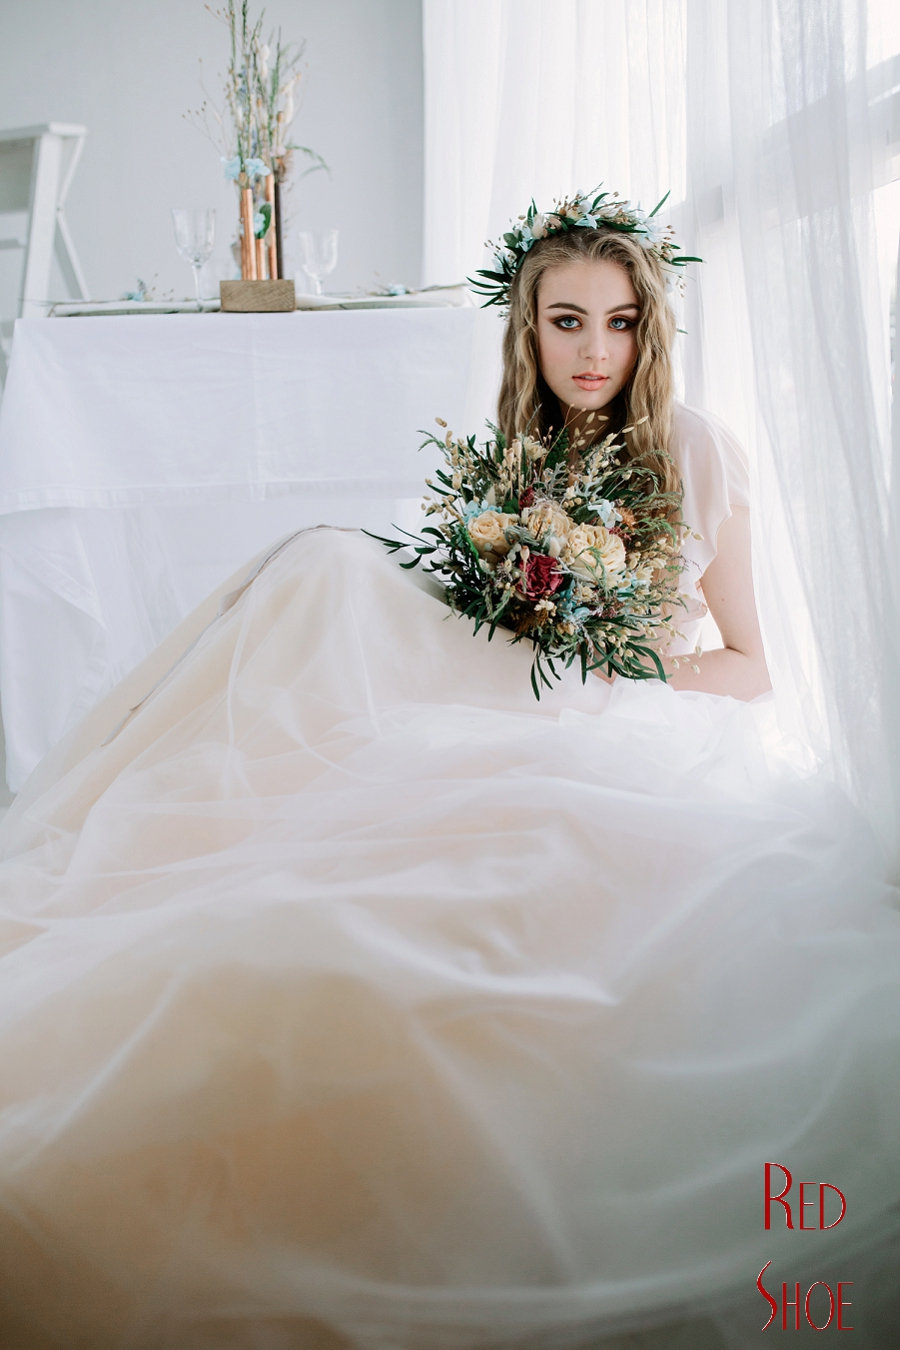 Boho bride, Glam Boho bride, Wedding inspiration, Styled wedding photo shoot, wedding ideas, wedding flower ideas, wedding photography, dried wedding flowers, boho bride makeup ideas_0031.jpg